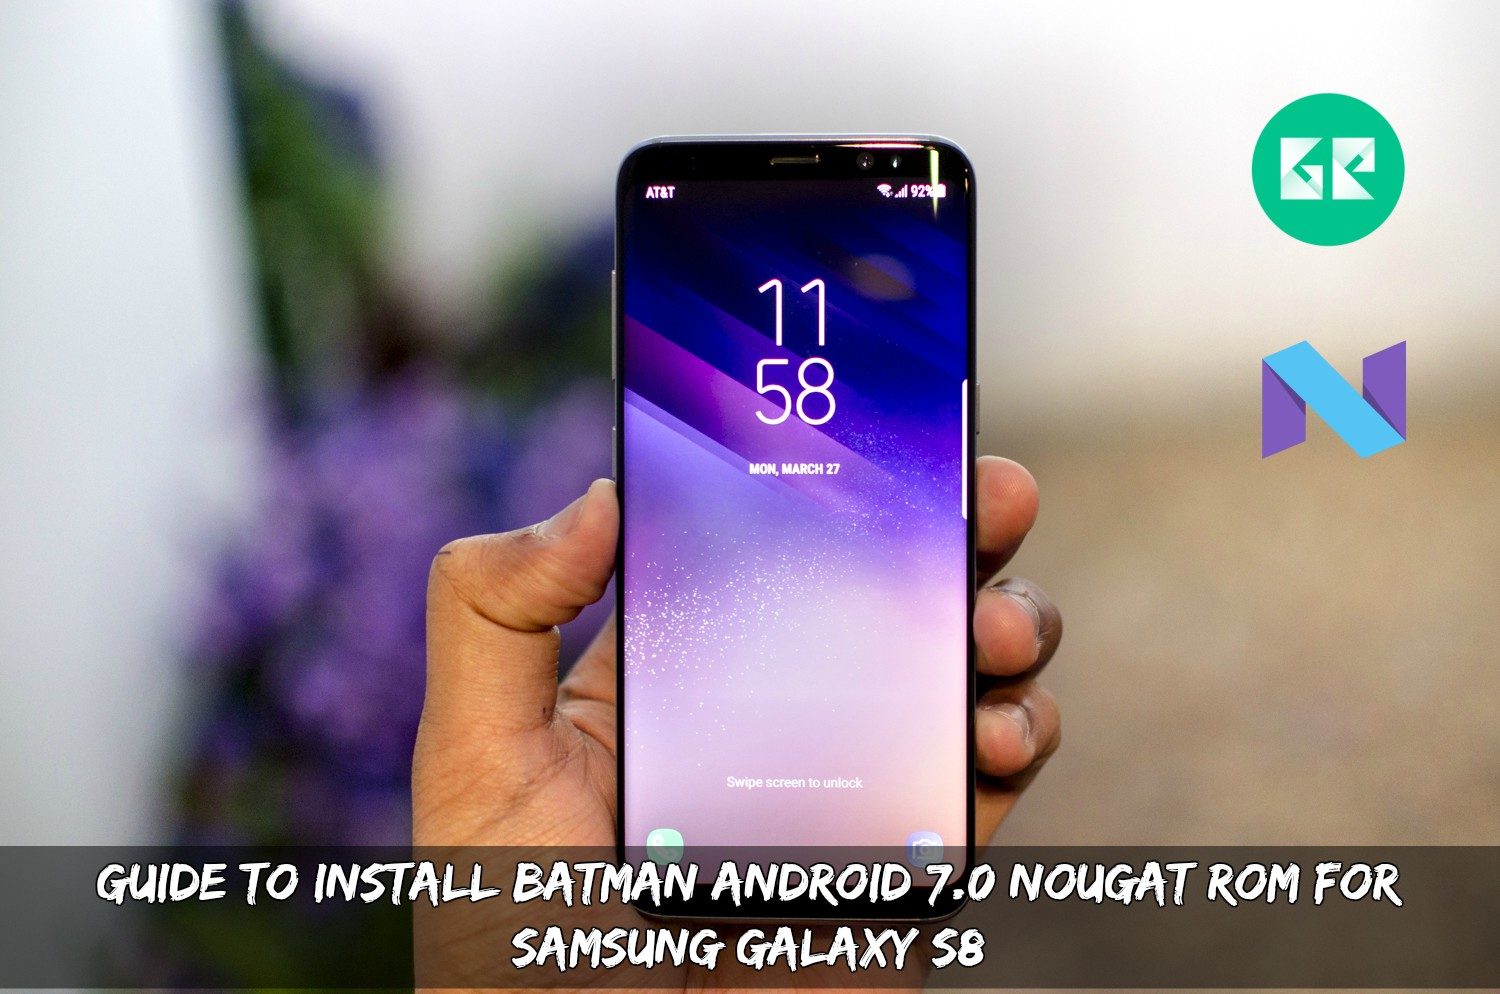 guide to install batman android 7 0 nougat rom for samsung galaxy s8. Black Bedroom Furniture Sets. Home Design Ideas